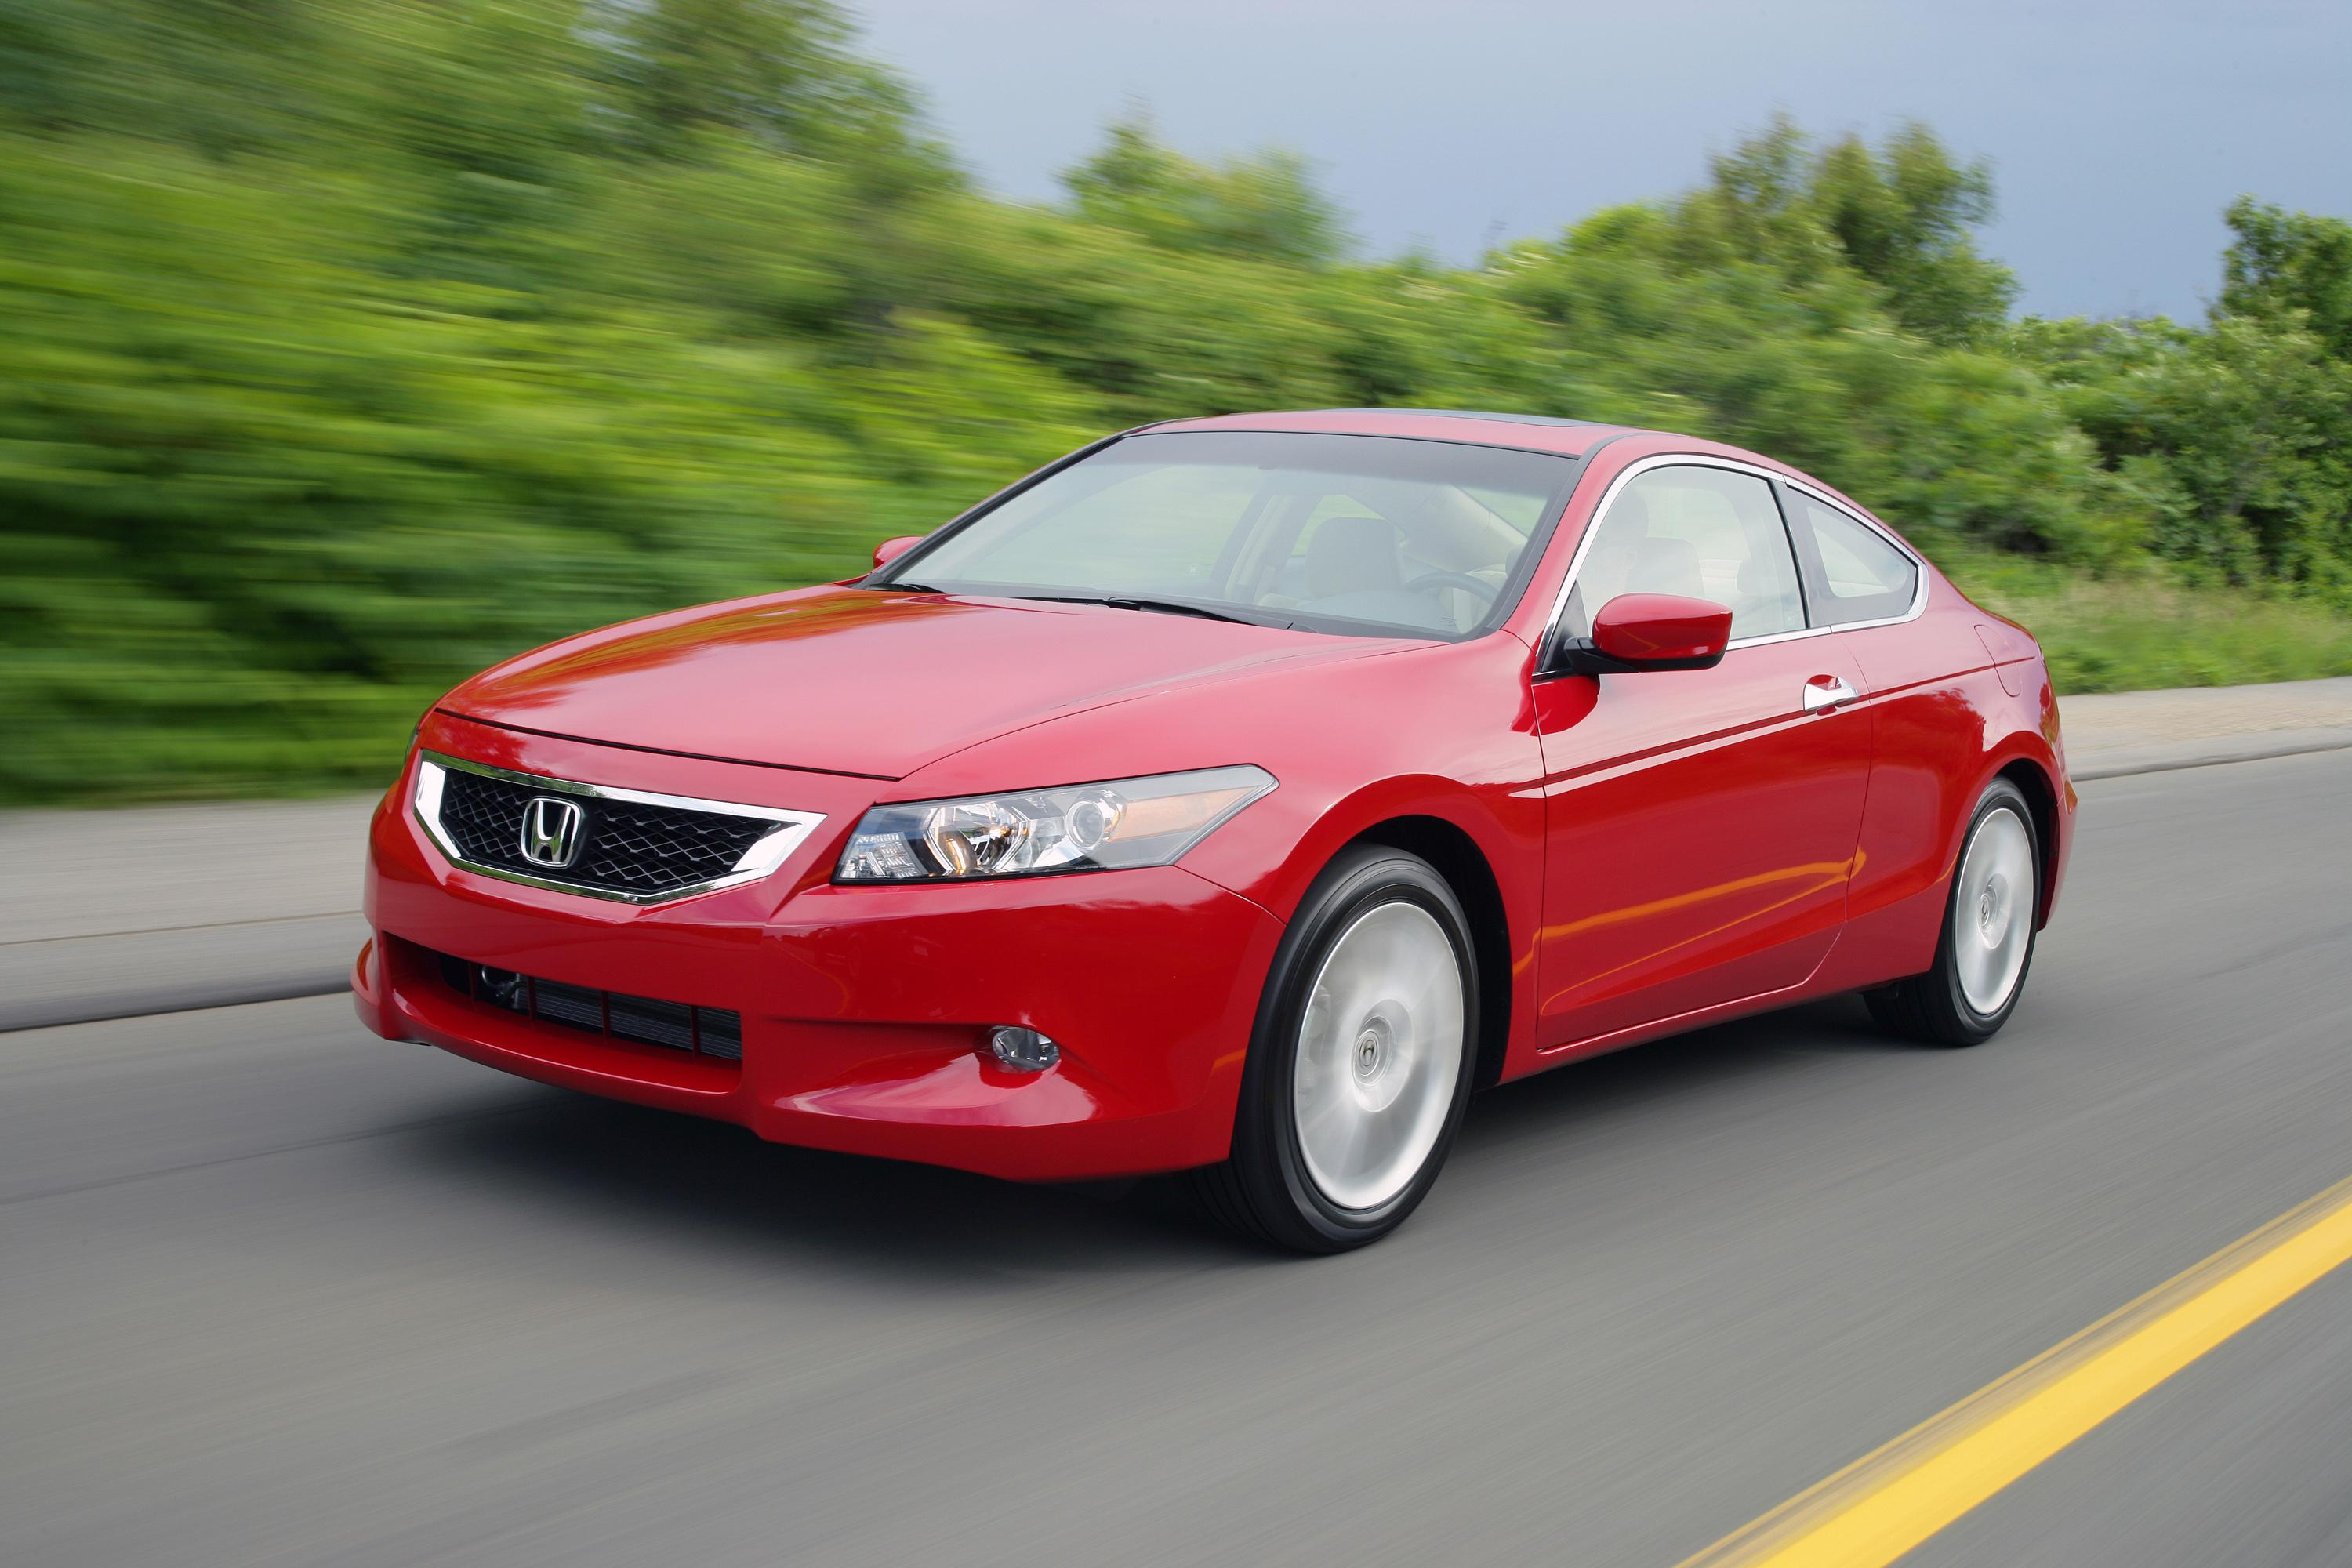 2010 accord with new features rh automobilesreview com 2010 accord manual pdf 2010 honda accord service manual pdf